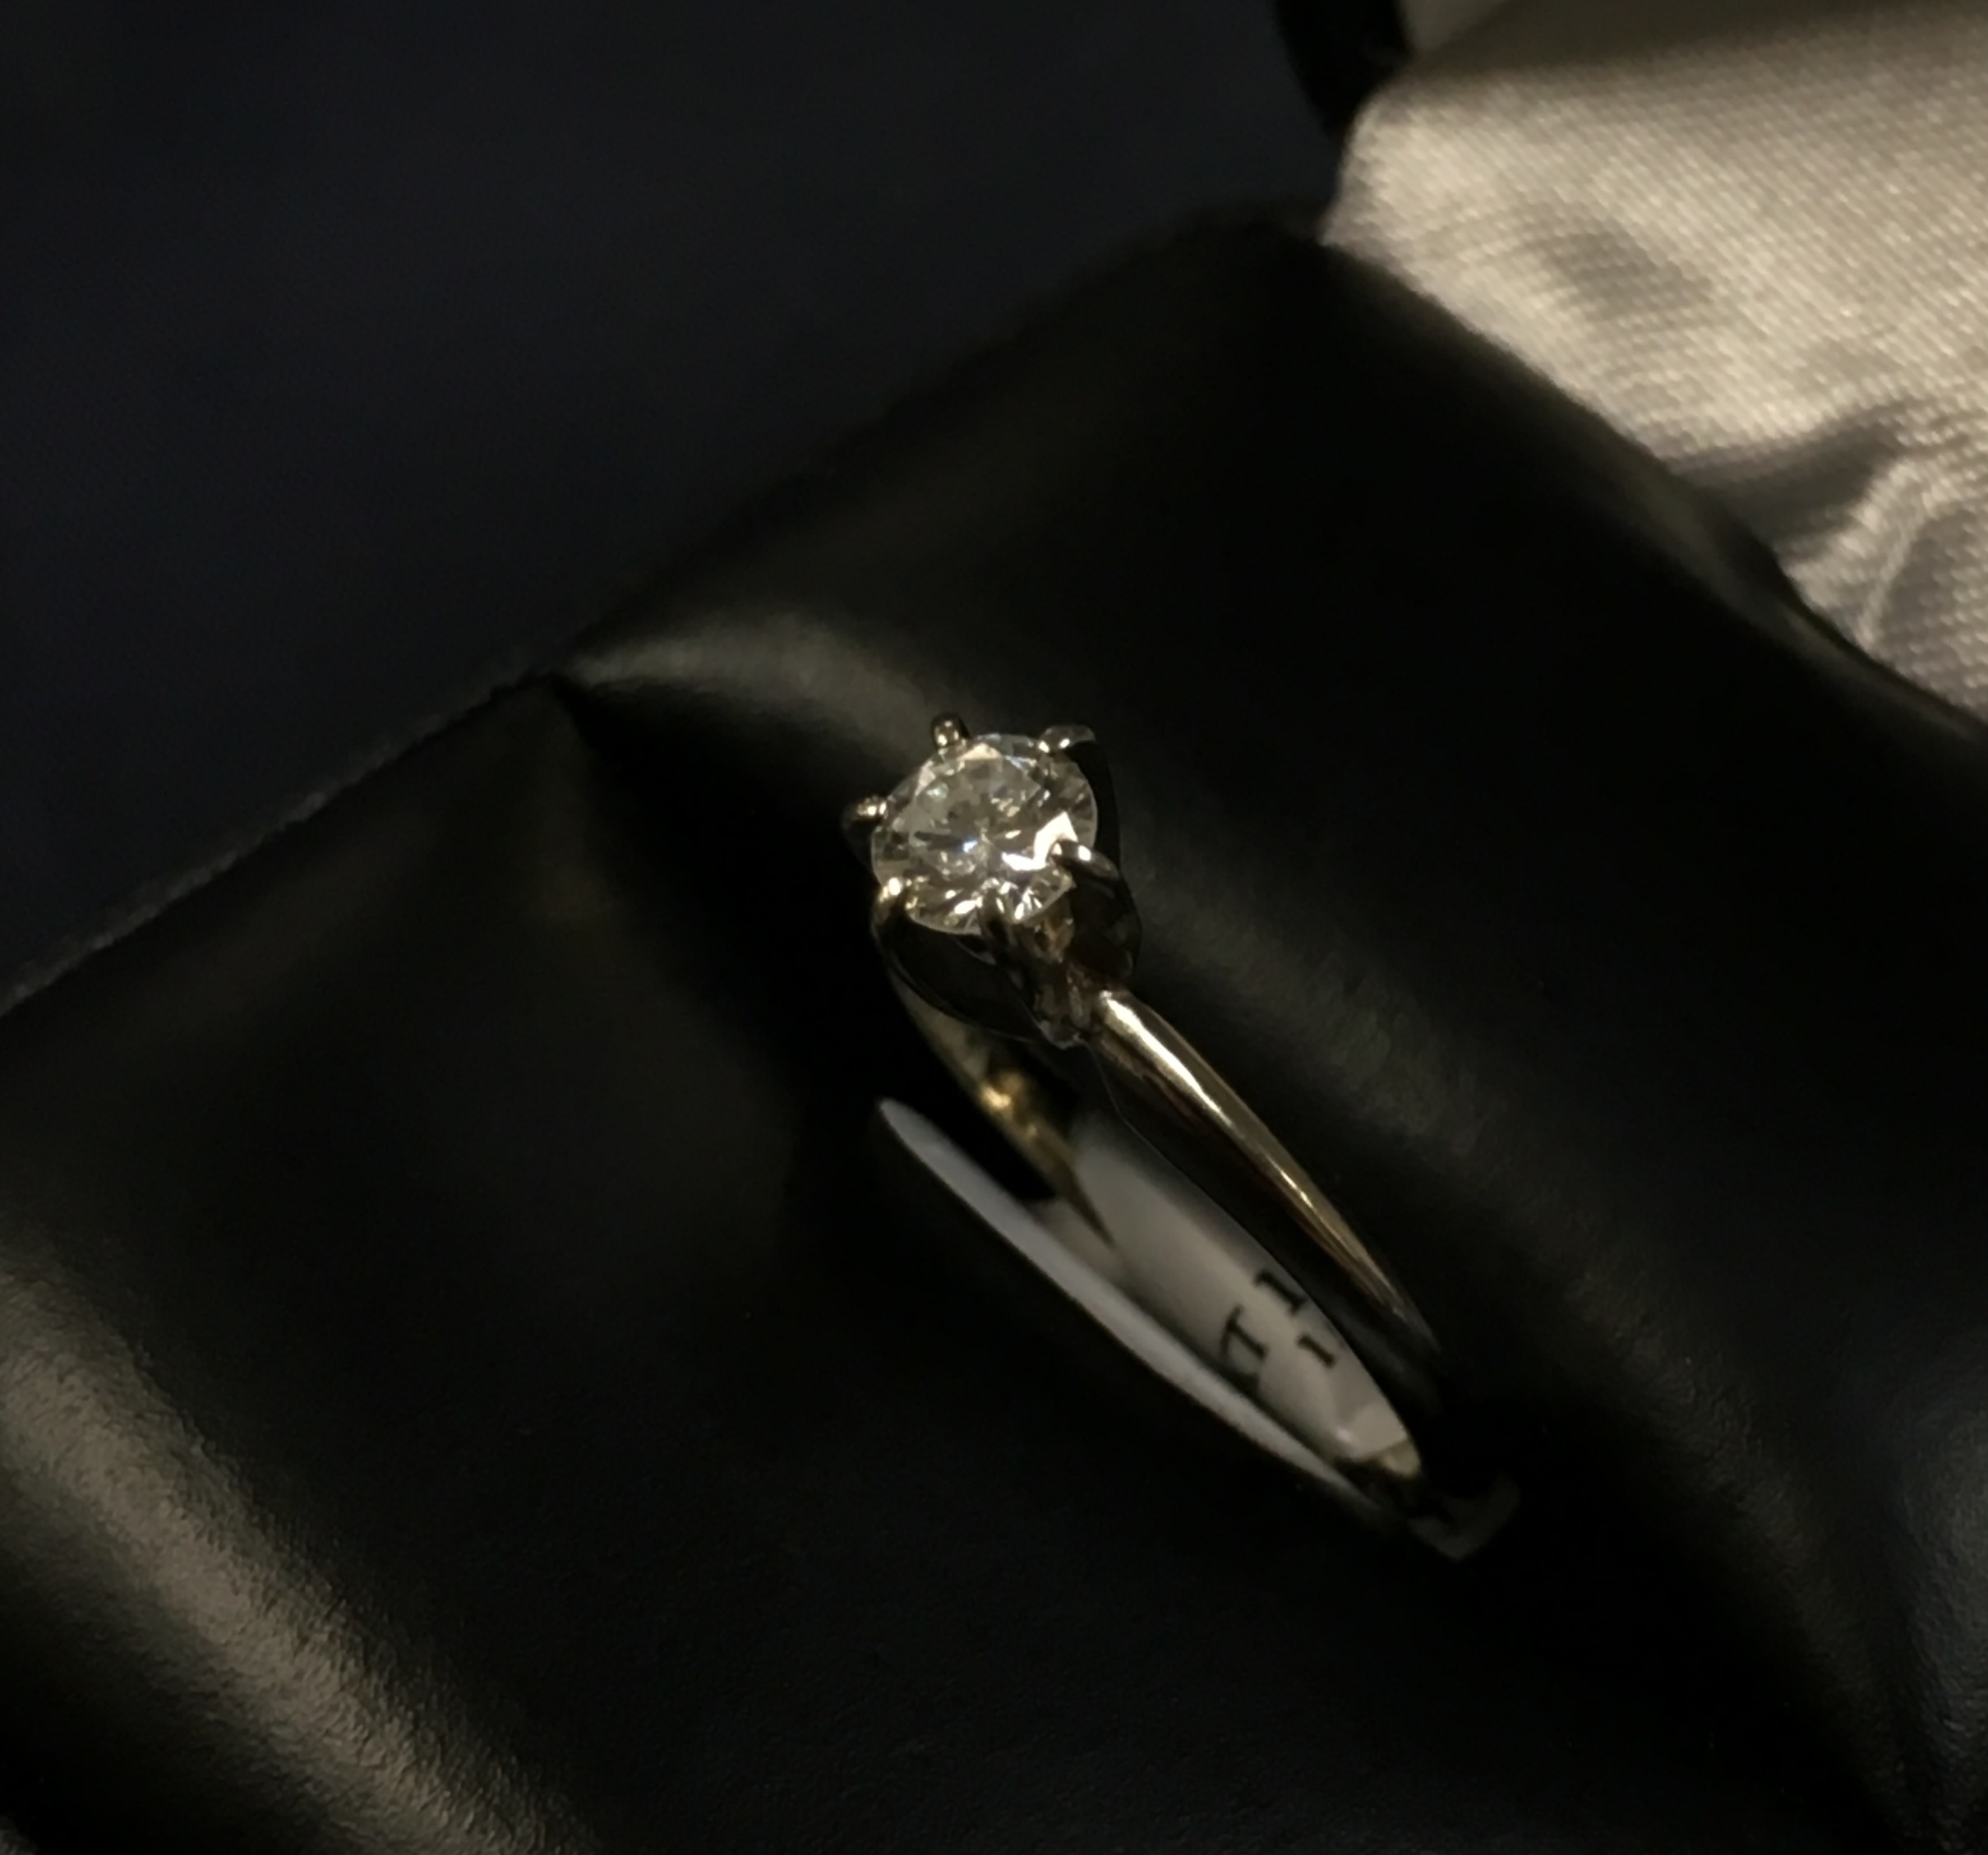 14KT WHITE GOLD RING WITH A APPROX 1/4 SOLITAIRE DIAMOND. SIZE: 5